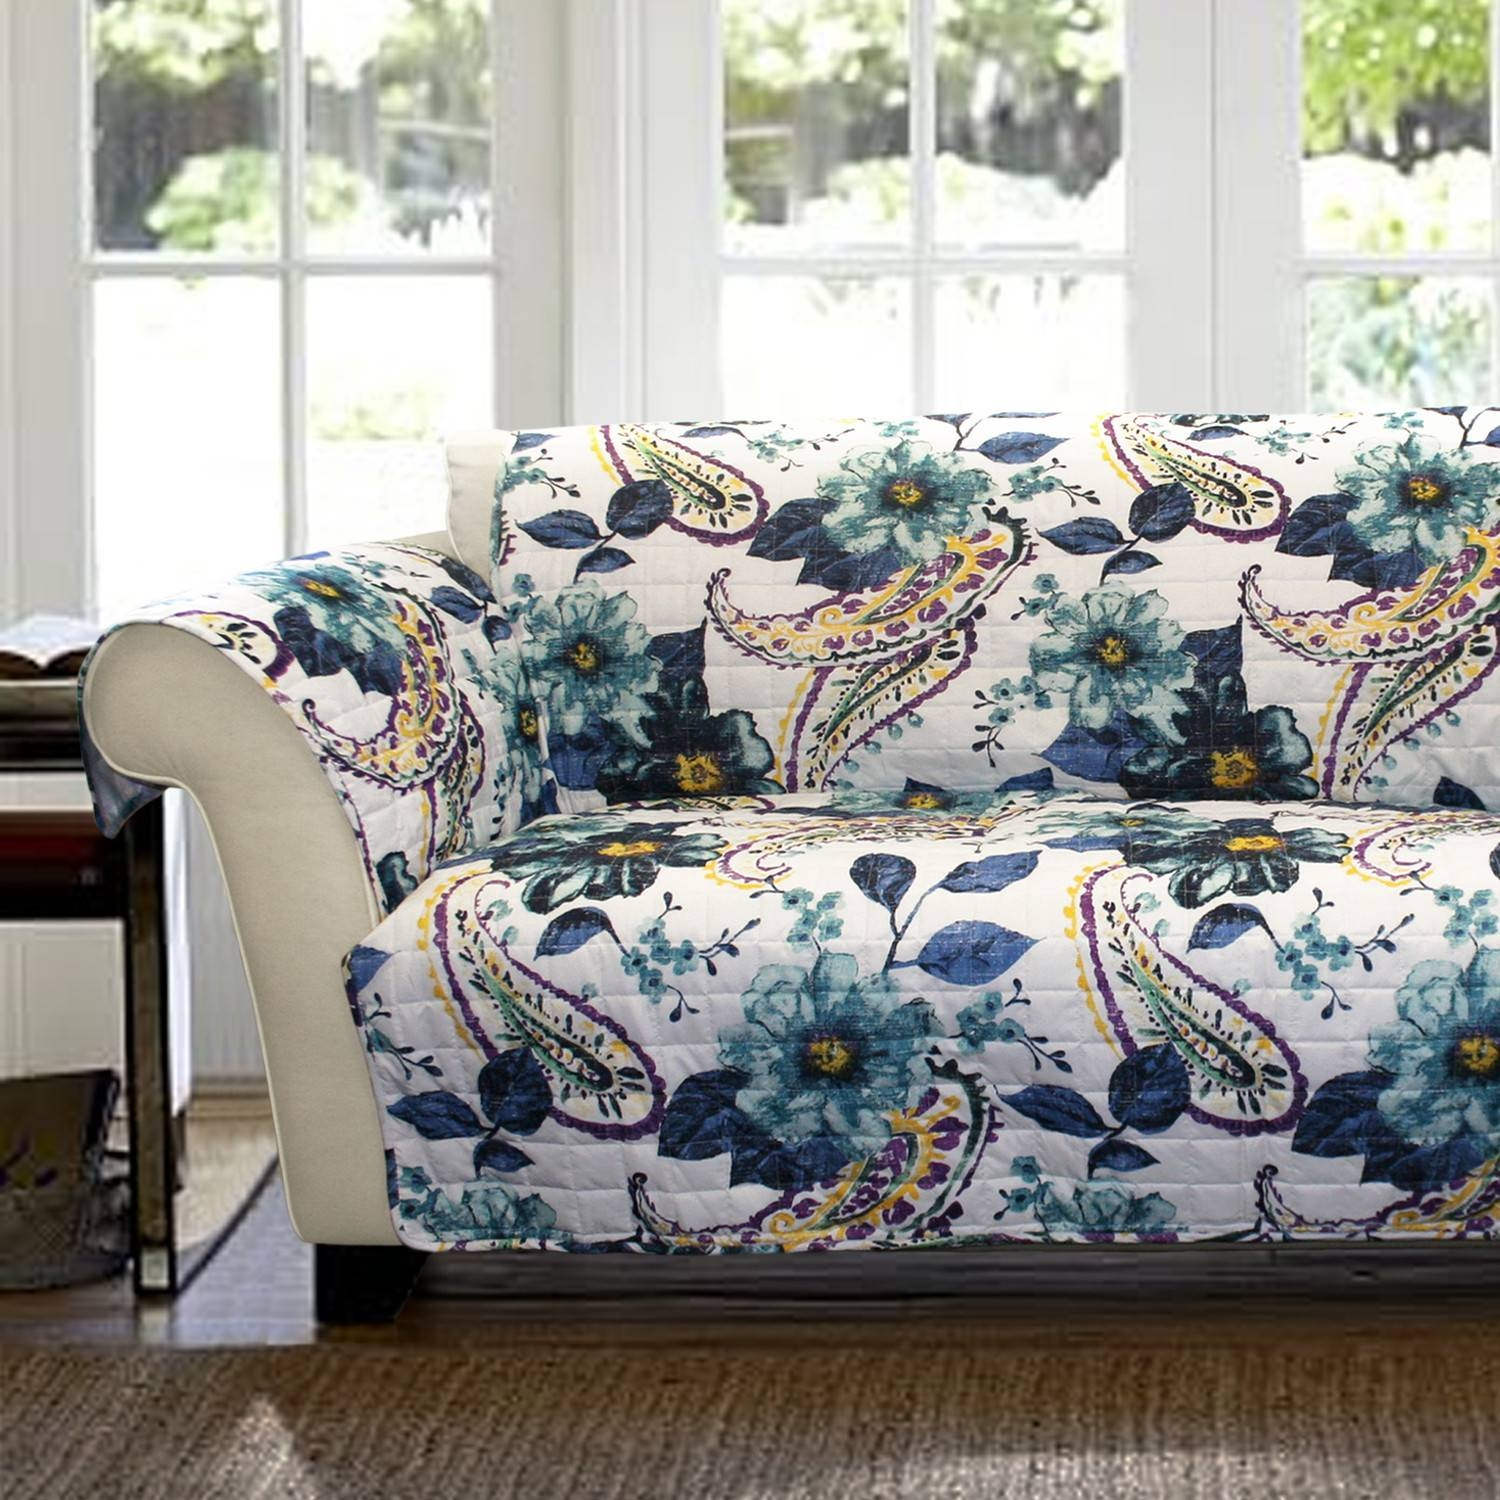 Best Modest Floral Sofas And Chairs #1658 in Floral Sofas And Chairs (Image 1 of 15)